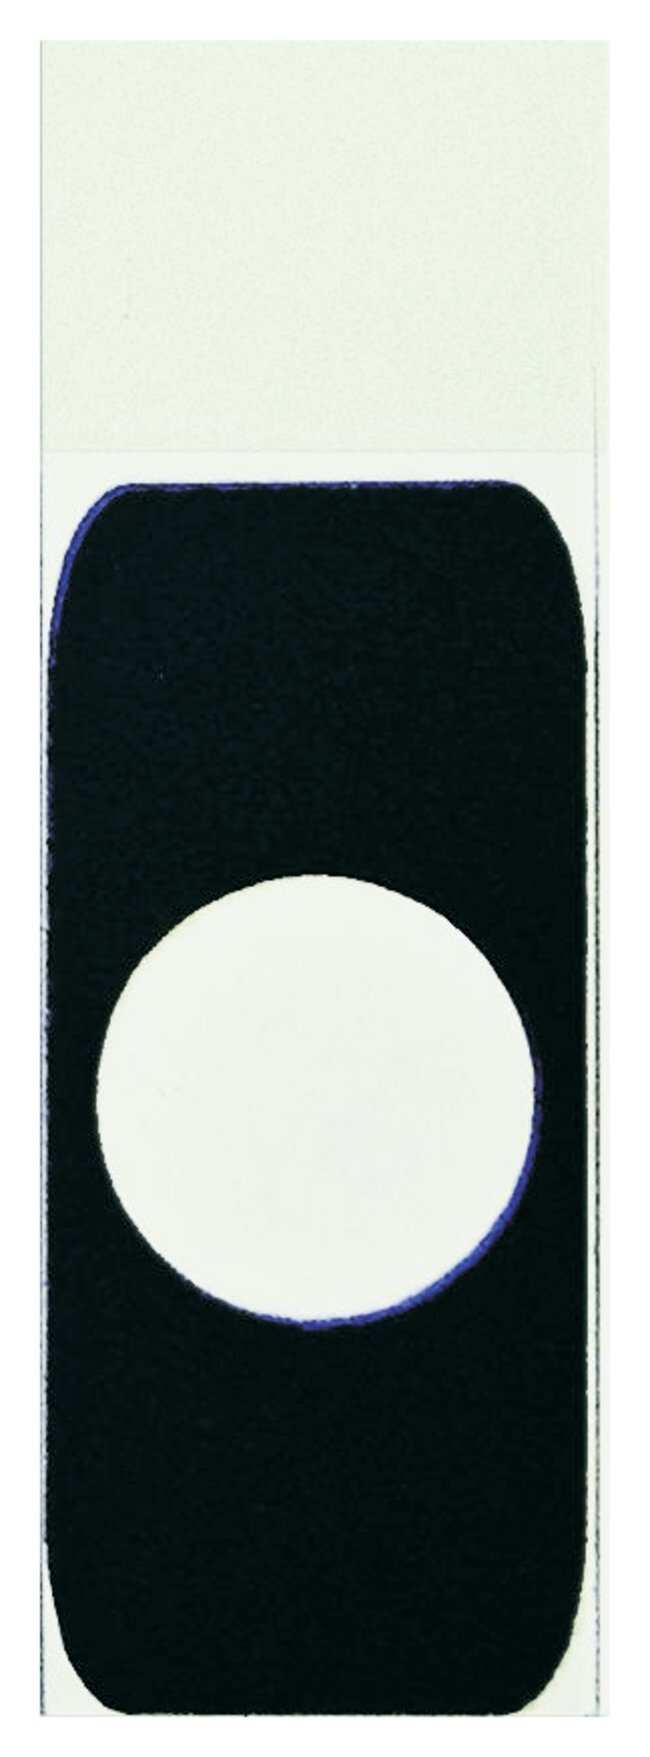 Scientific DevicePrinted TB Slides TB Printed Slides, Well size: 20mm:Microscope